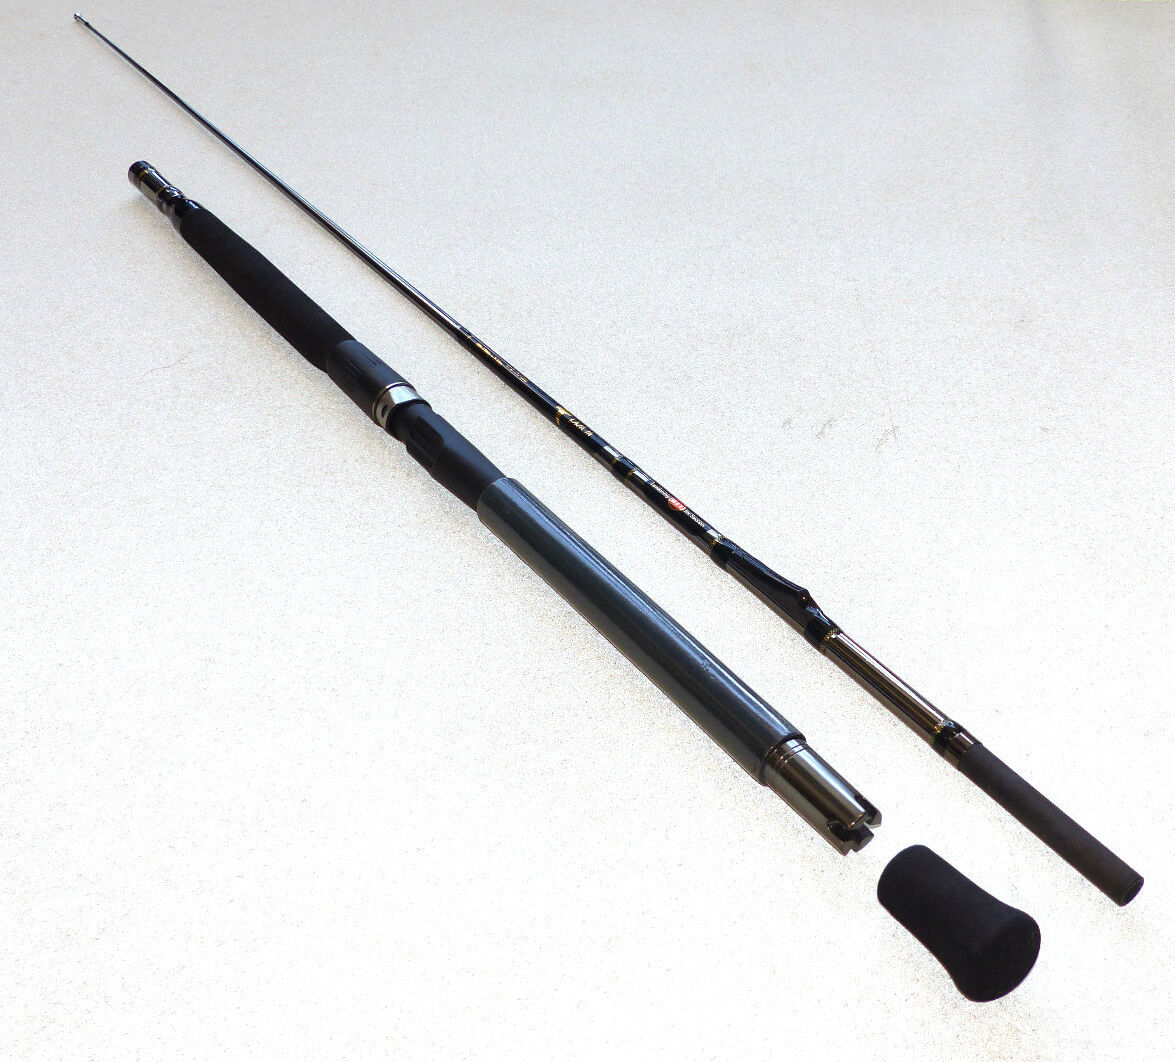 WFT prion Inline 2.40m, sea rod, casting weight 200-300g, also for Norway